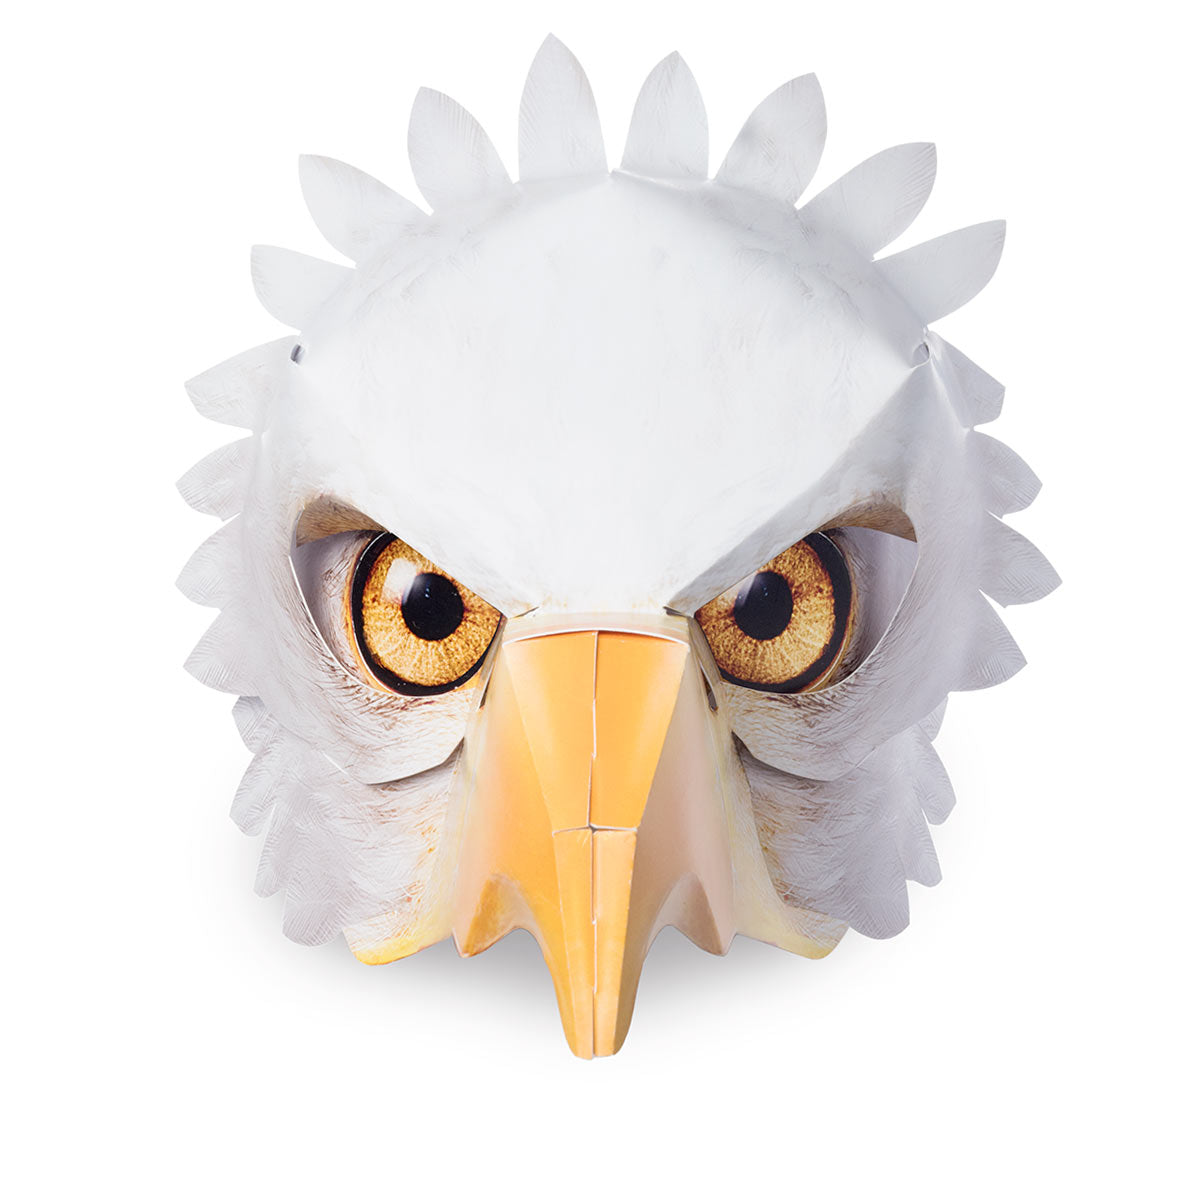 Mask Bald Eagle – Half mask front view